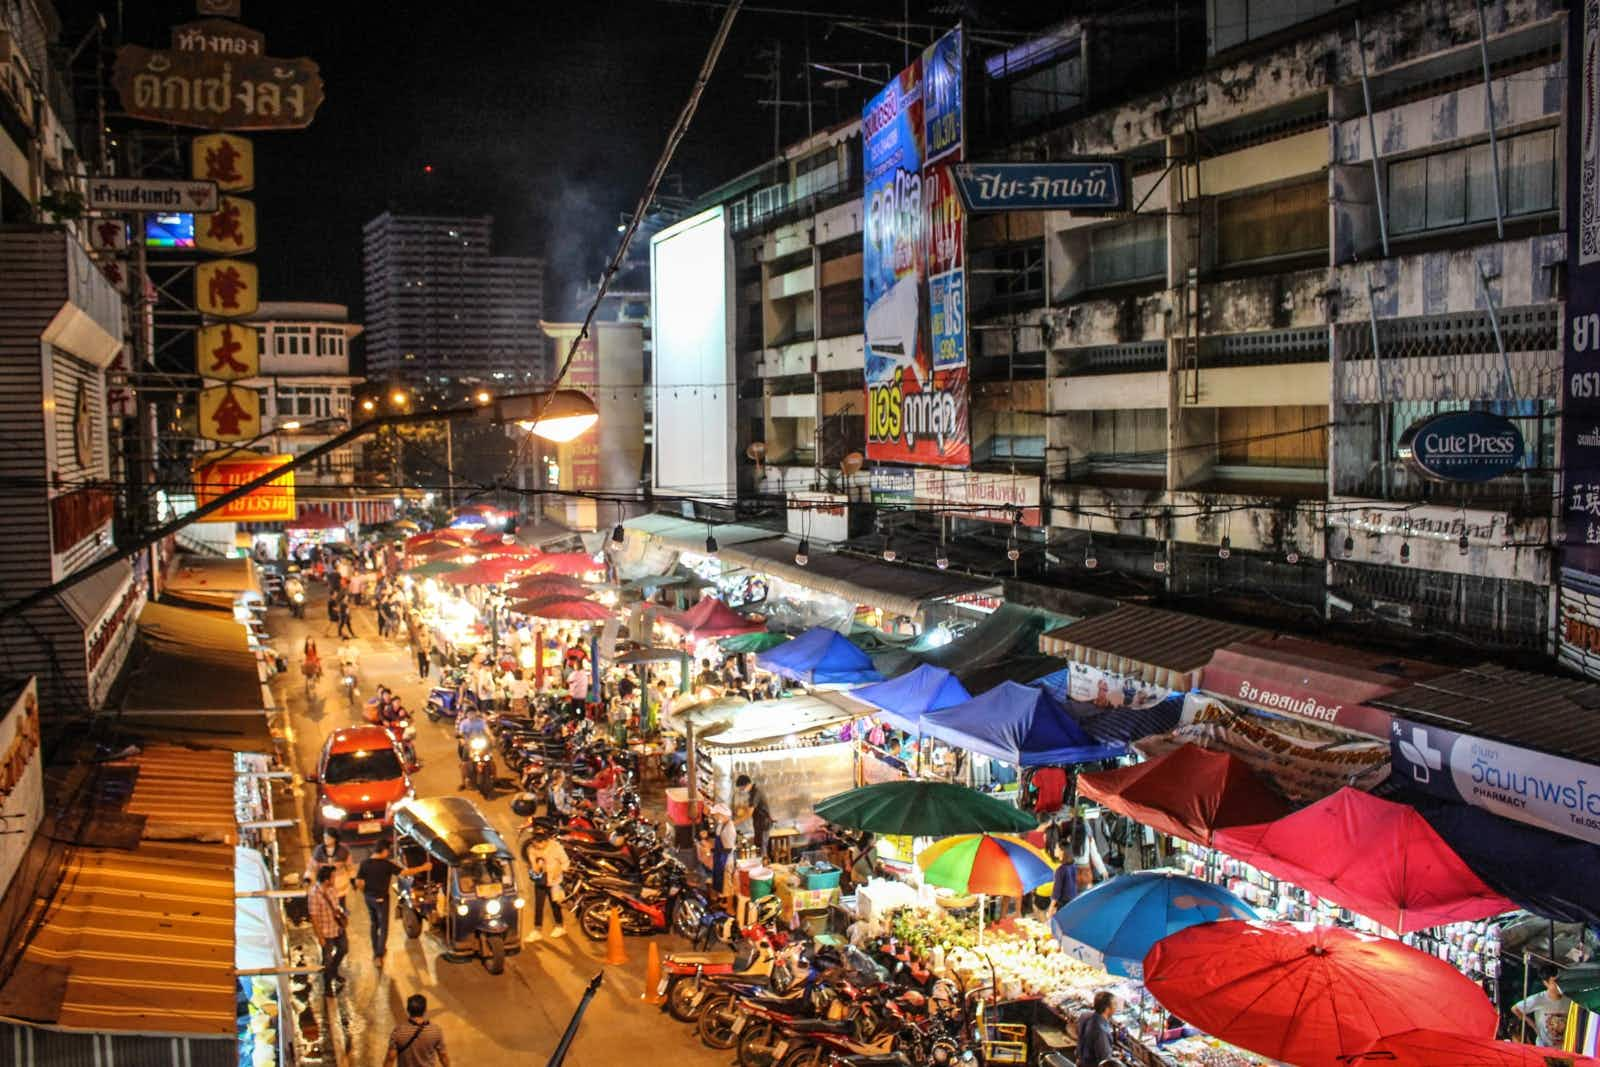 Vendors line and light up the street at Talat Warorot in Chiang Mai, Thailand © Alana Morgan / Lonely Planet